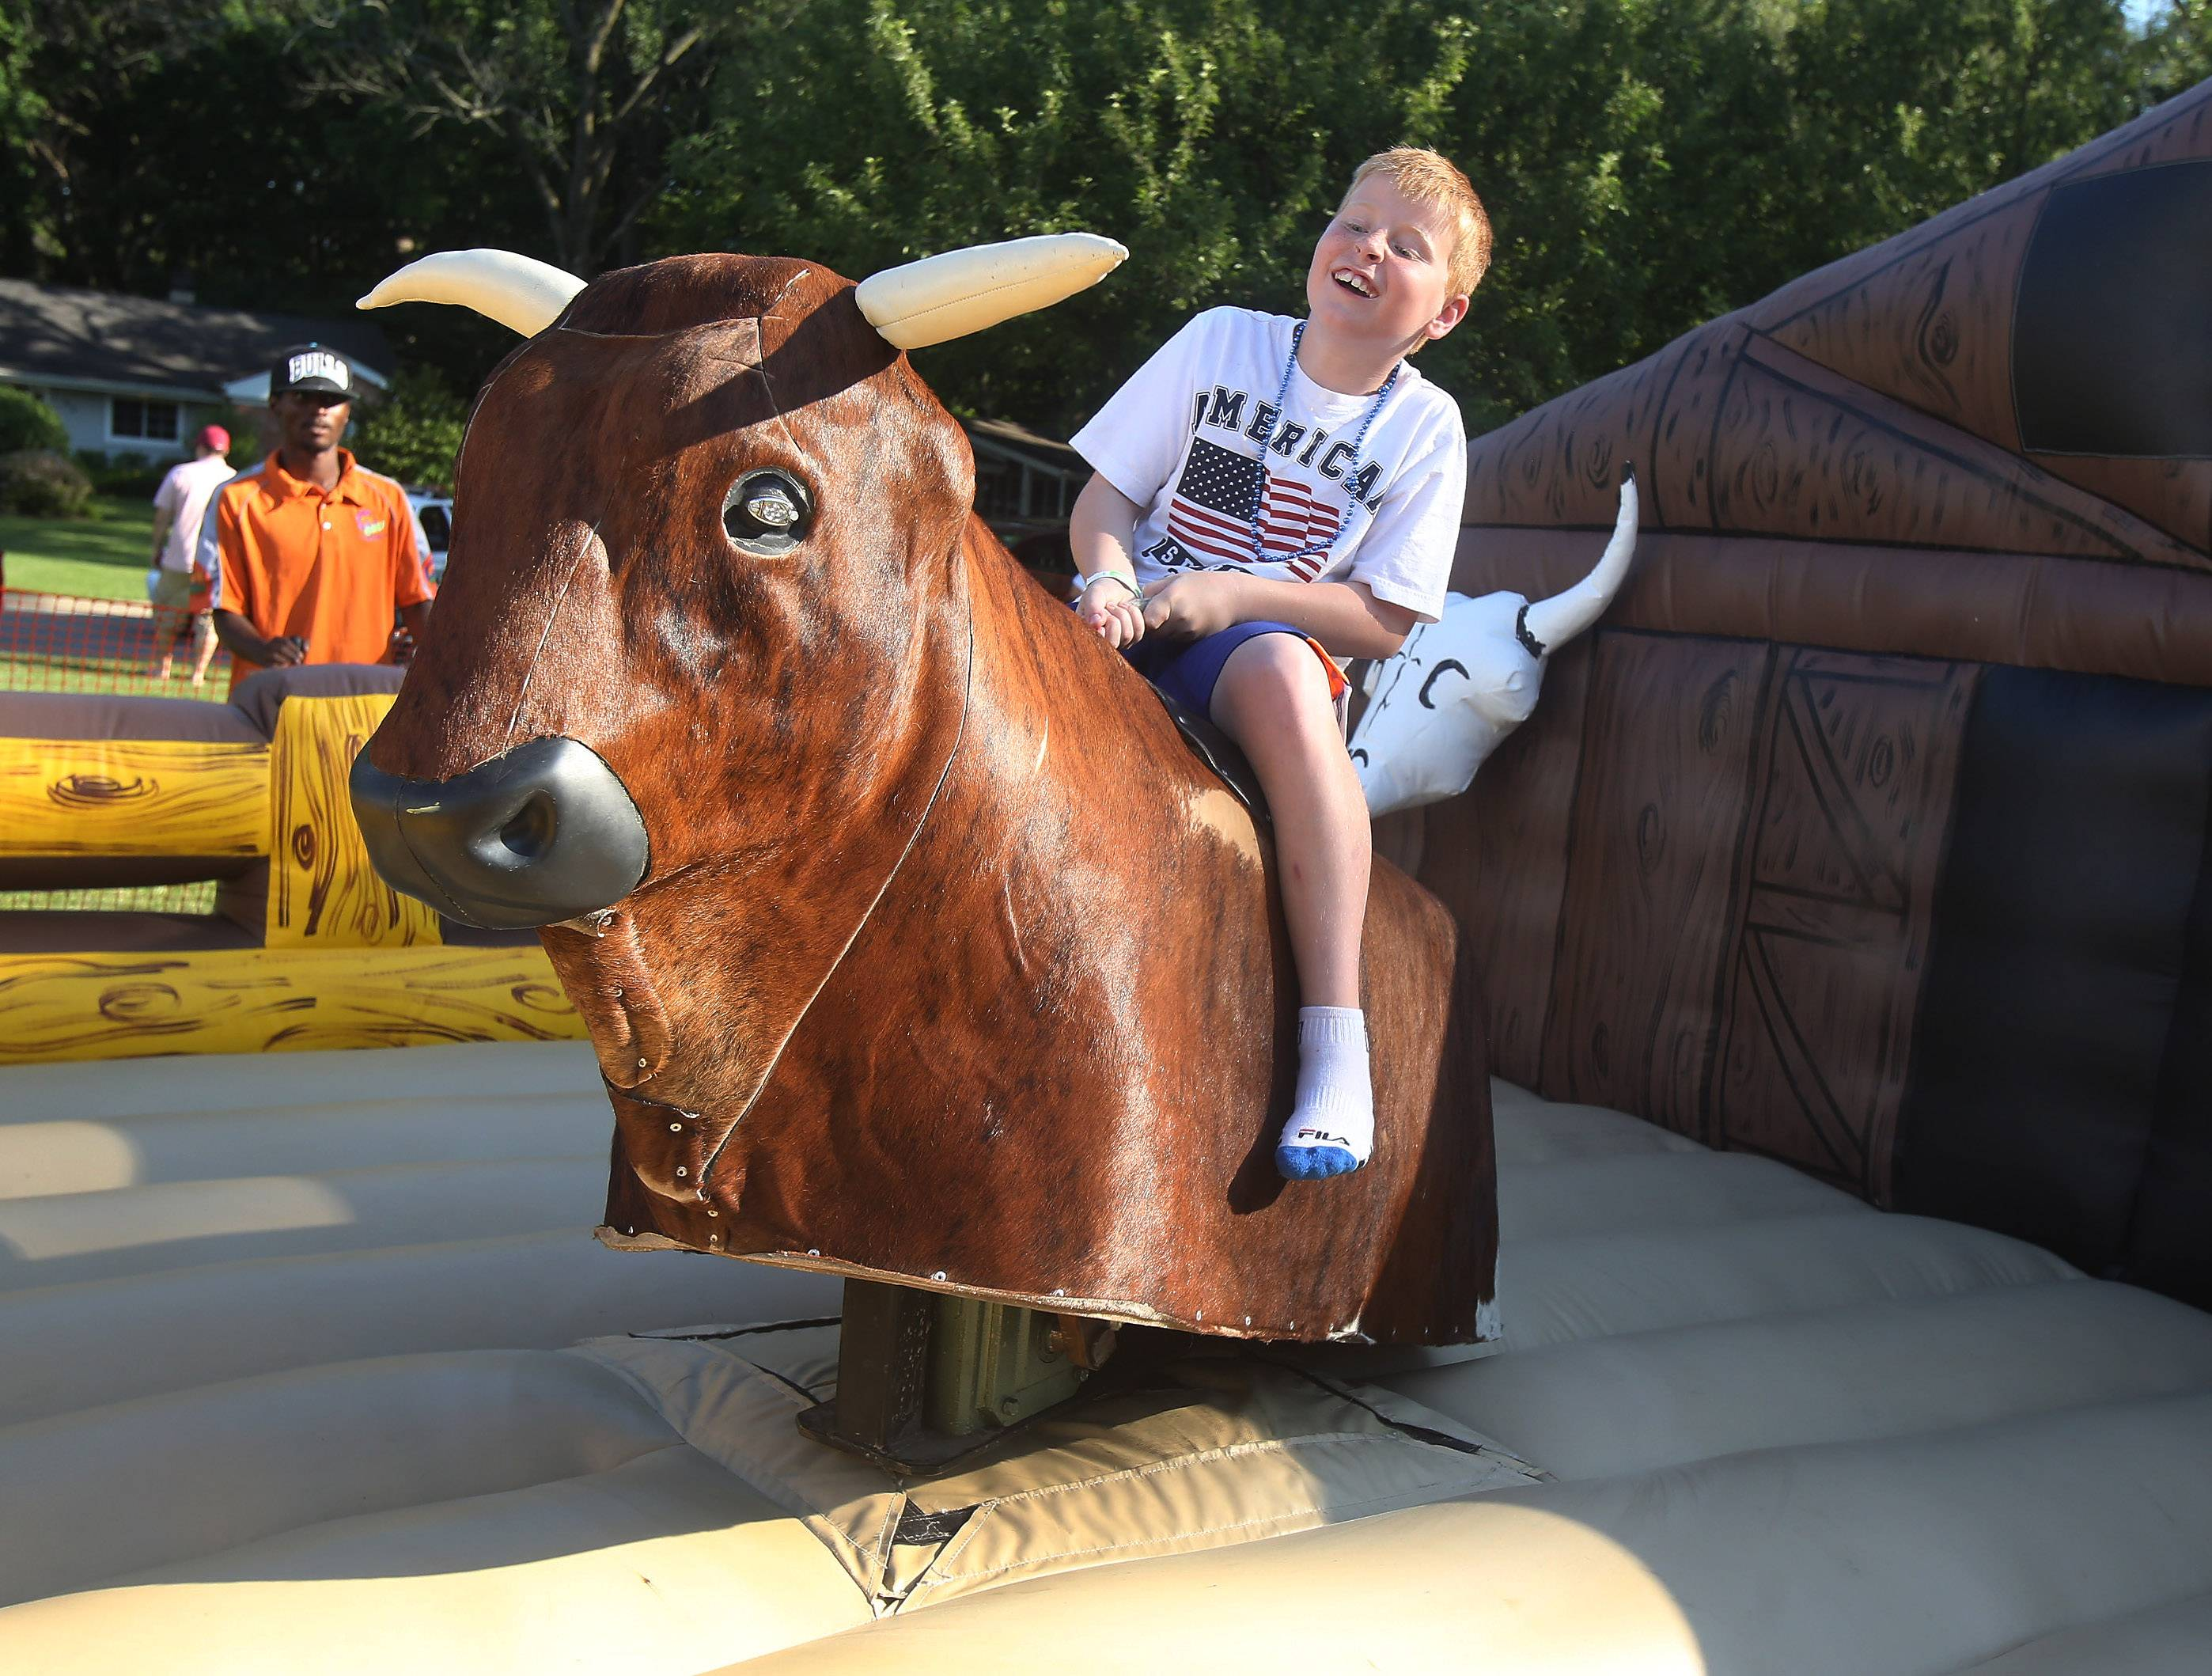 Conrad Dick, 10, rides the mechanical bull during the first day of Lincolnshire's Red, White & Boom celebration Thursday at Spring Lake Park. The Lincolnshire Community Association festival featured a mechanical bull riding competition, vintage car show, games, food and entertainment.